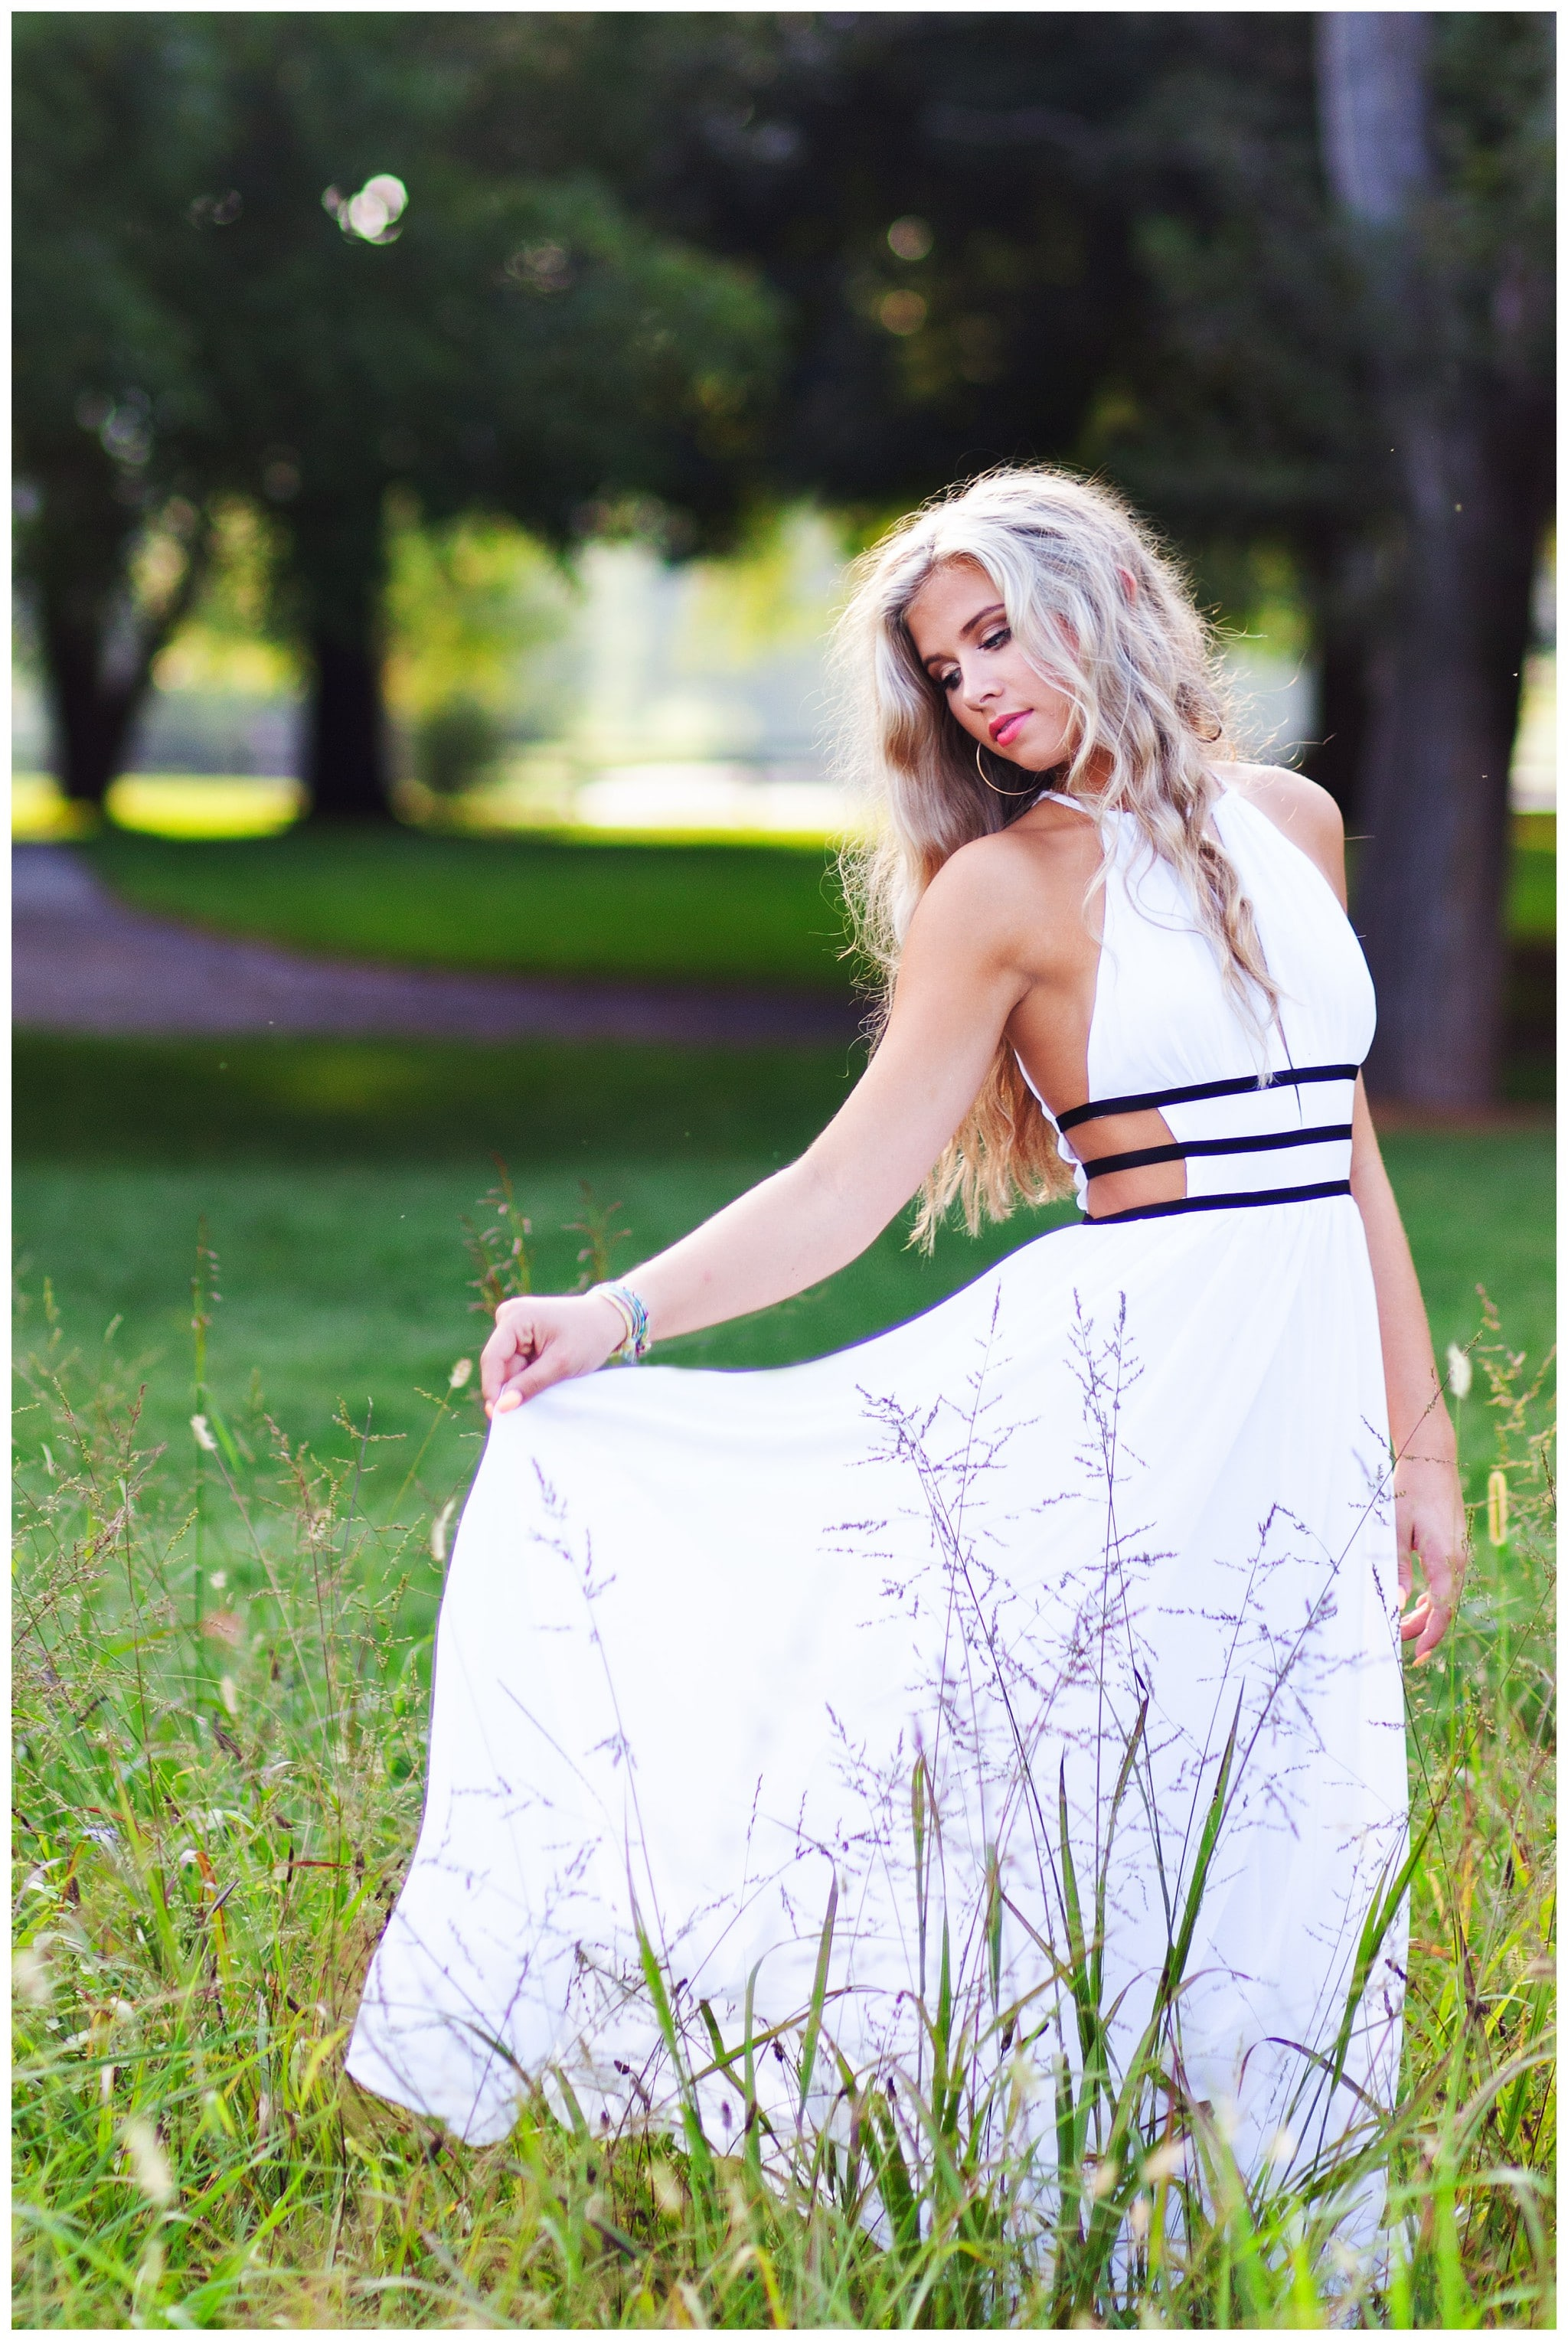 Twighlight Senior Session in Louisville KY in a beautiful field of tall grass.